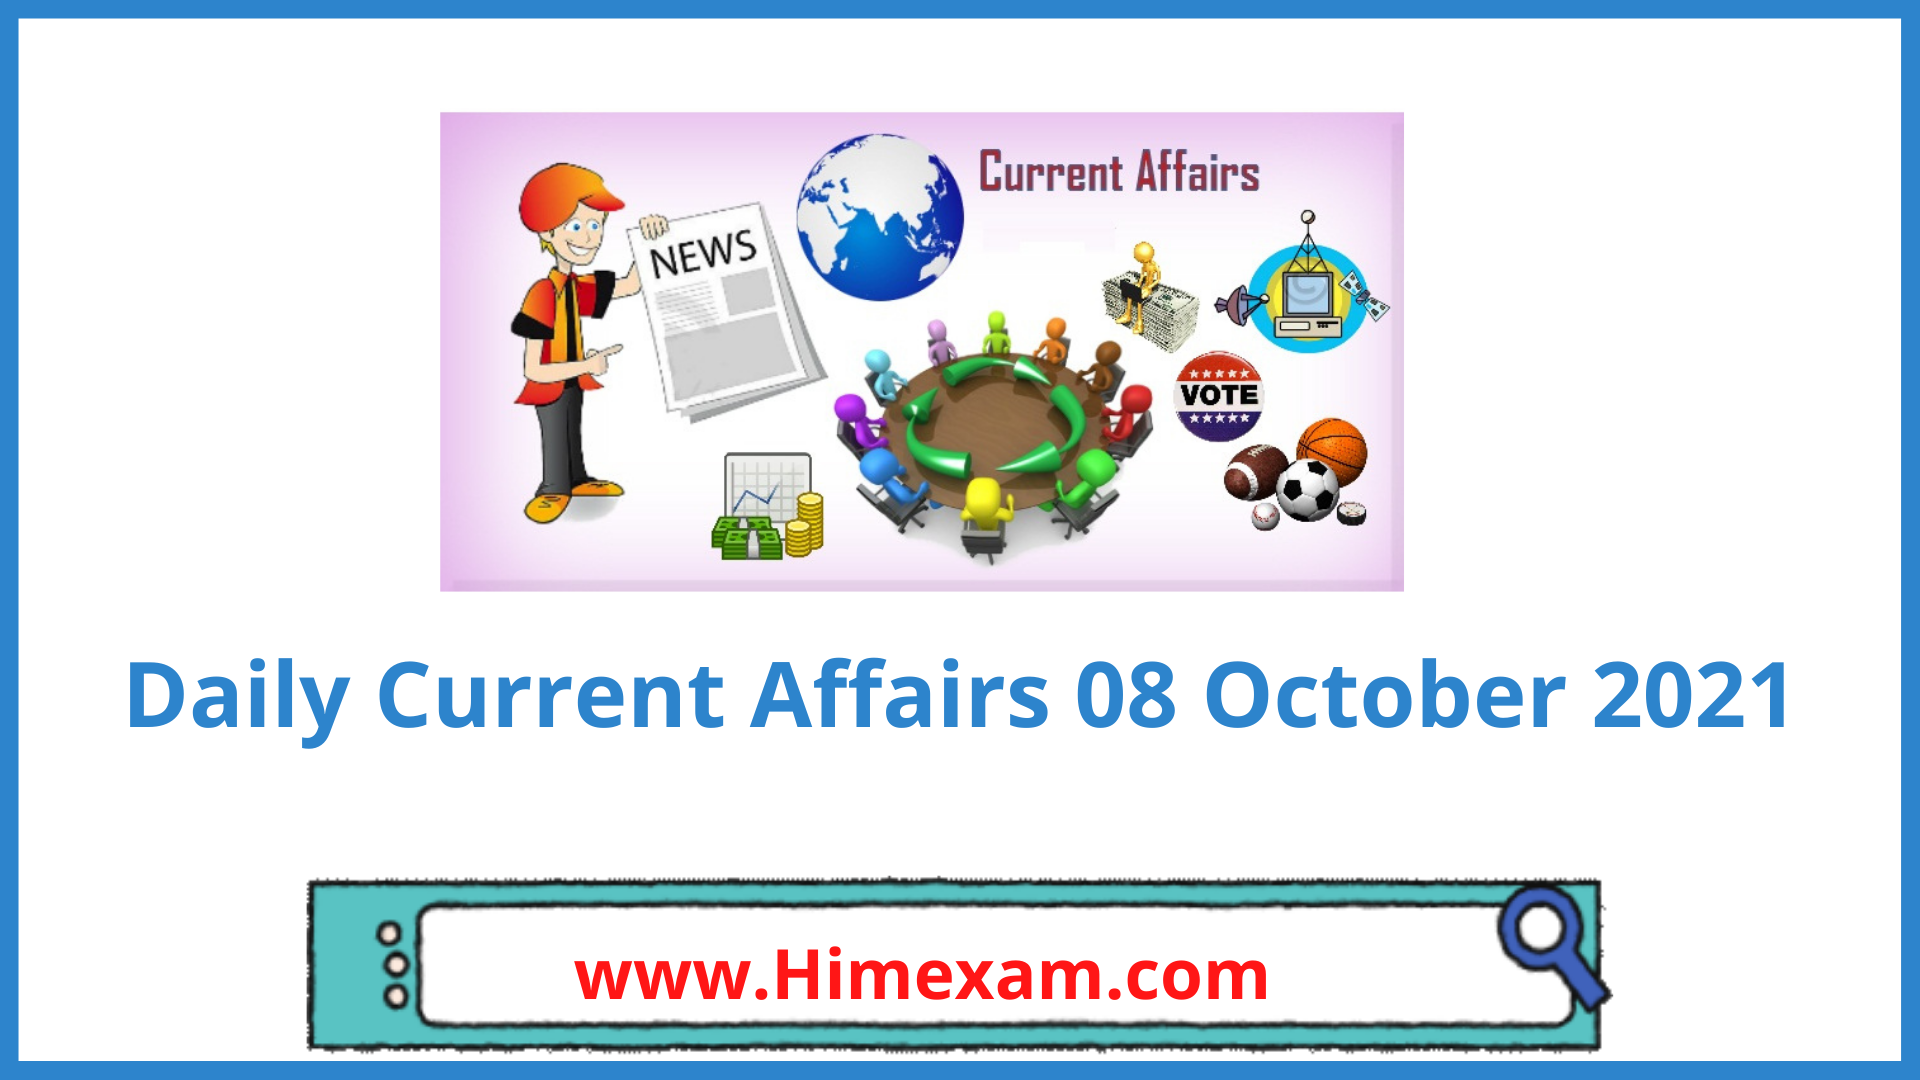 Daily Current Affairs 08 October 2021